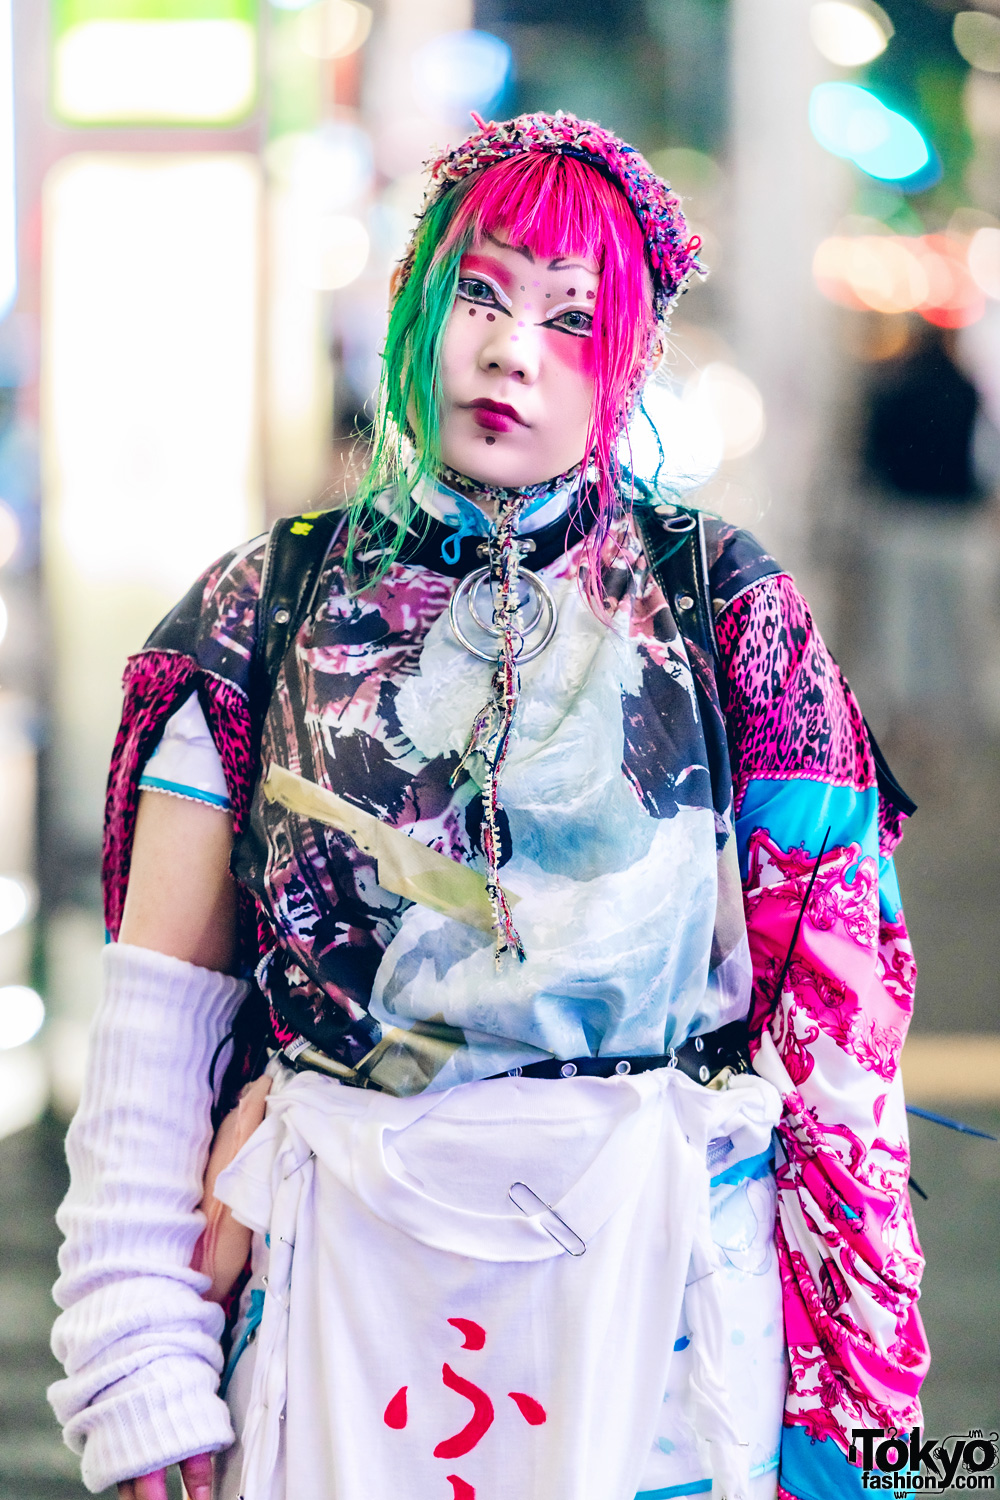 Colorful Japanese Avant-Garde Street Fashion W/ Dog